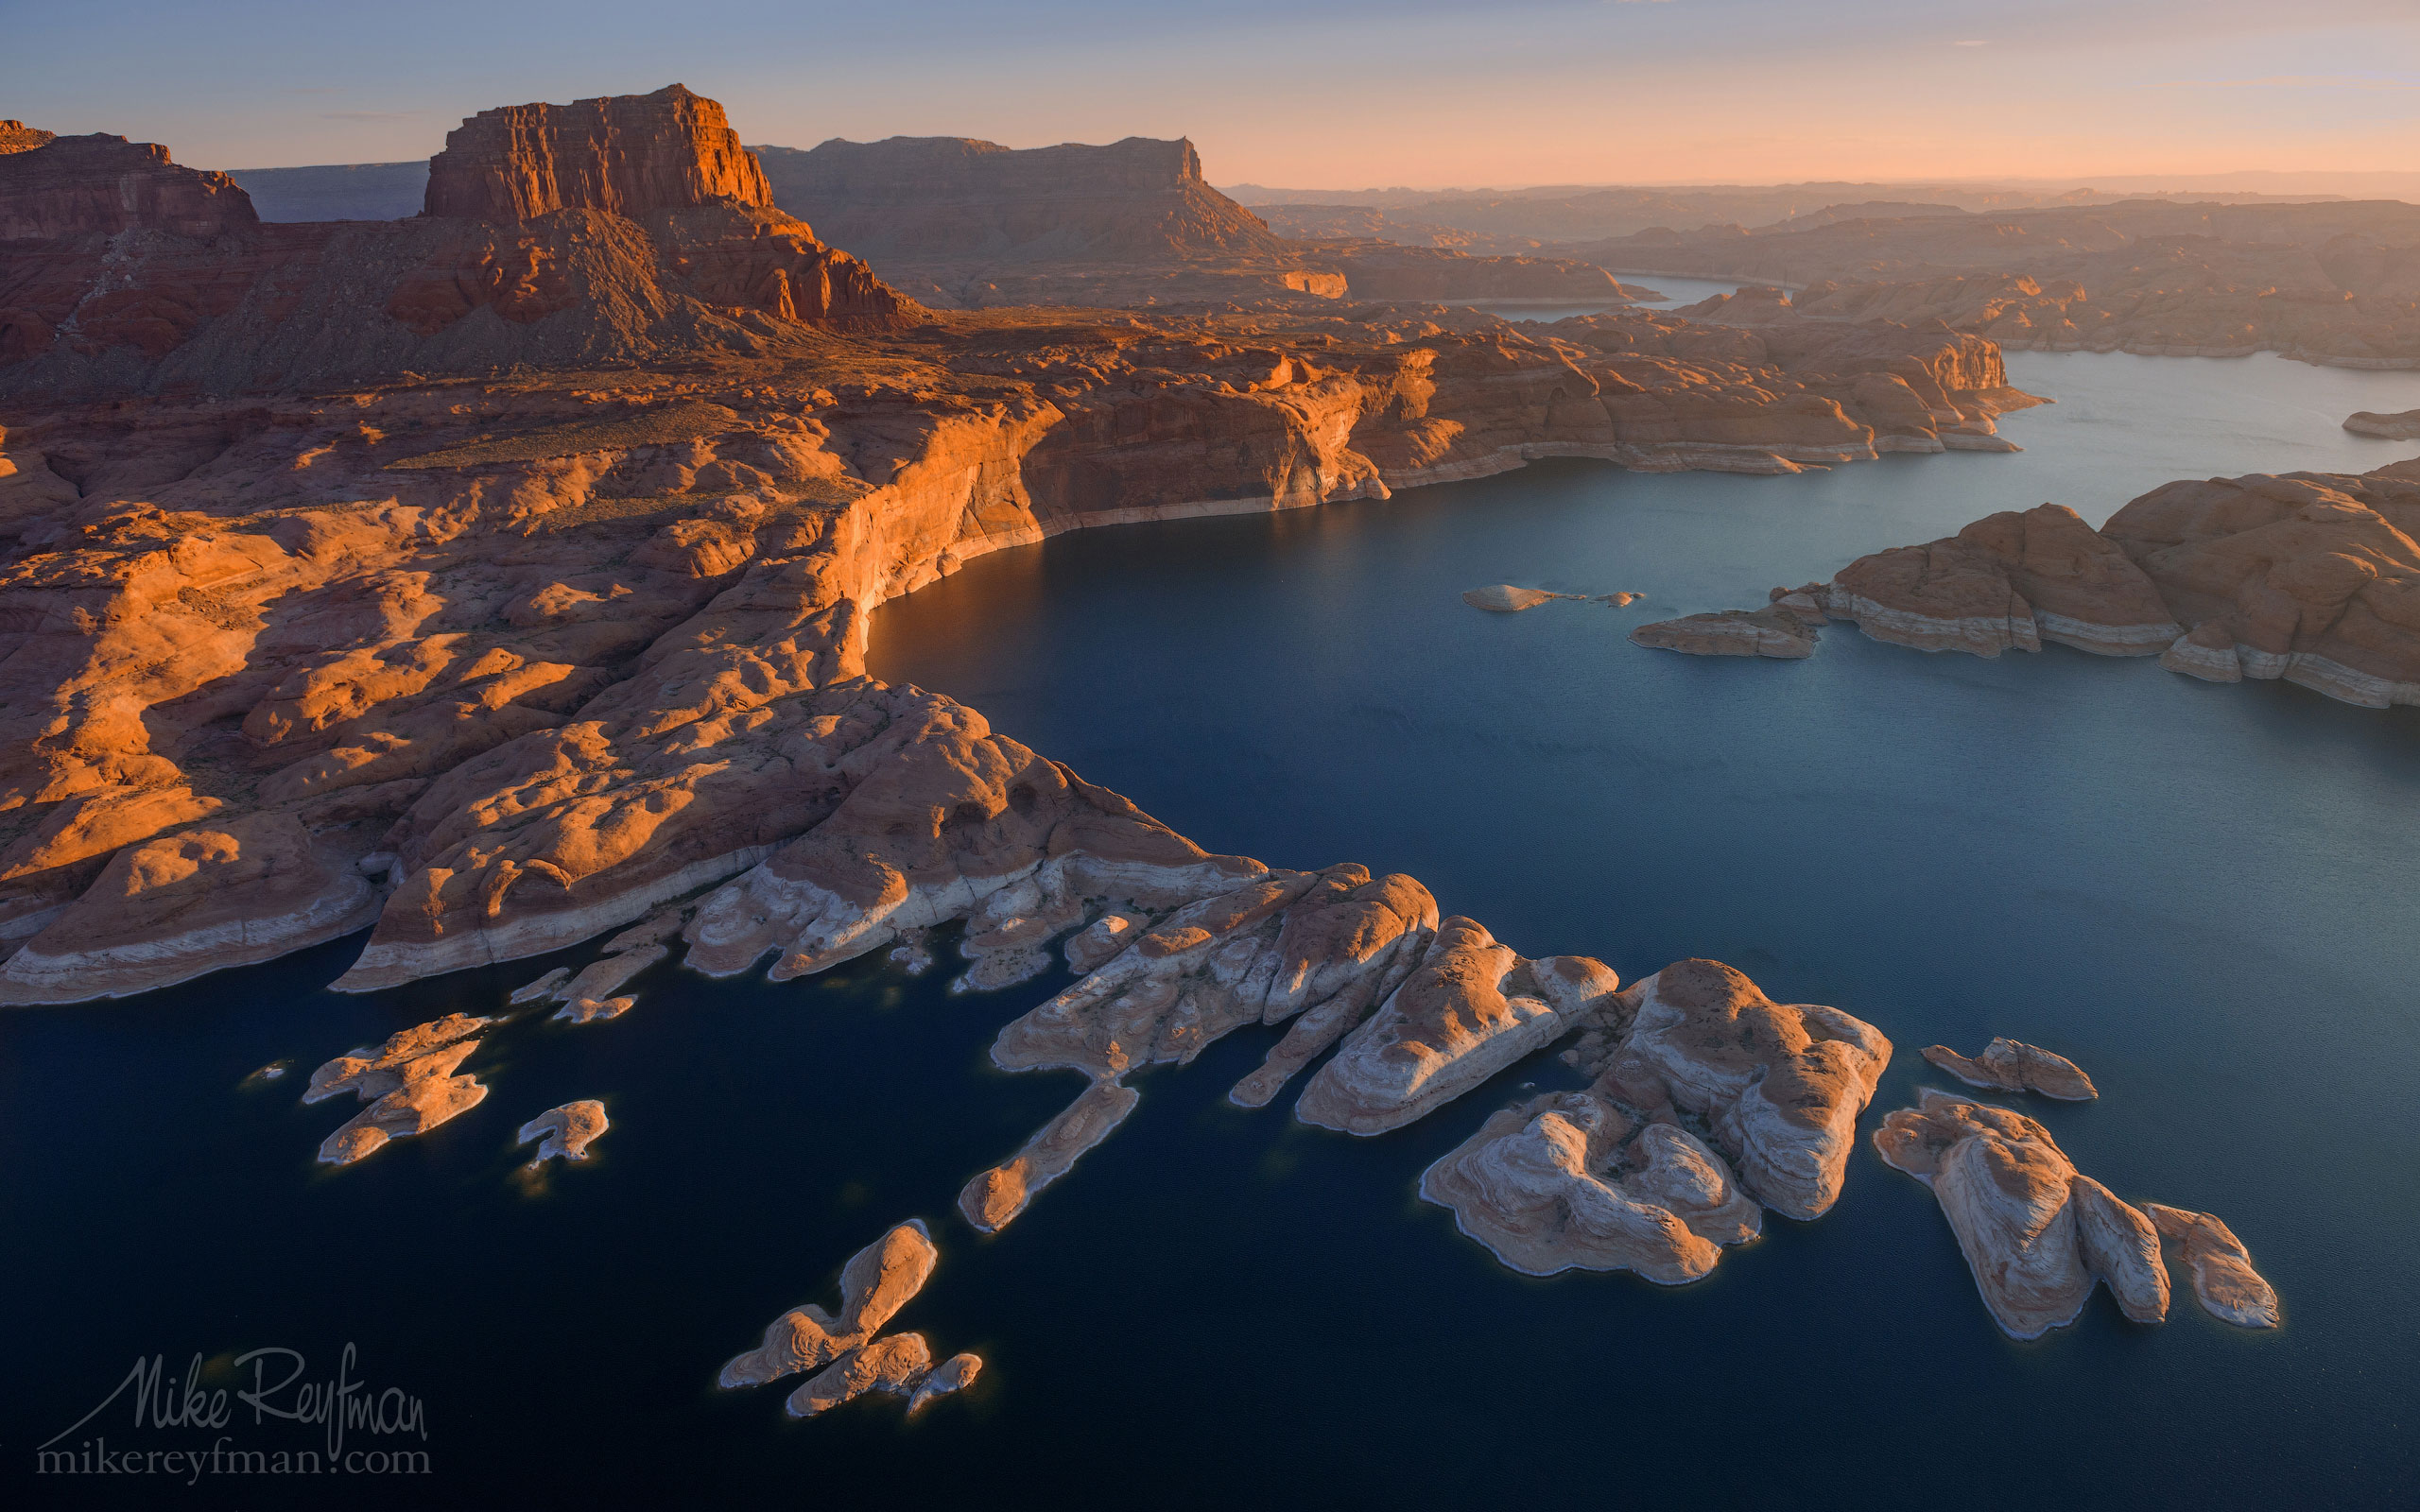 Colorado River Near Mouth of the Forbidding Canyon. Glen Canyon NRA, Lake Powell, Utah/Arizona, US. Aerial. 028-LP3_O3X5369.jpg - Lake Powell, Glen Canyon NAR. Colorado and Sun Juan Rivers. Utah/Arizona, USA  - Mike Reyfman Photography